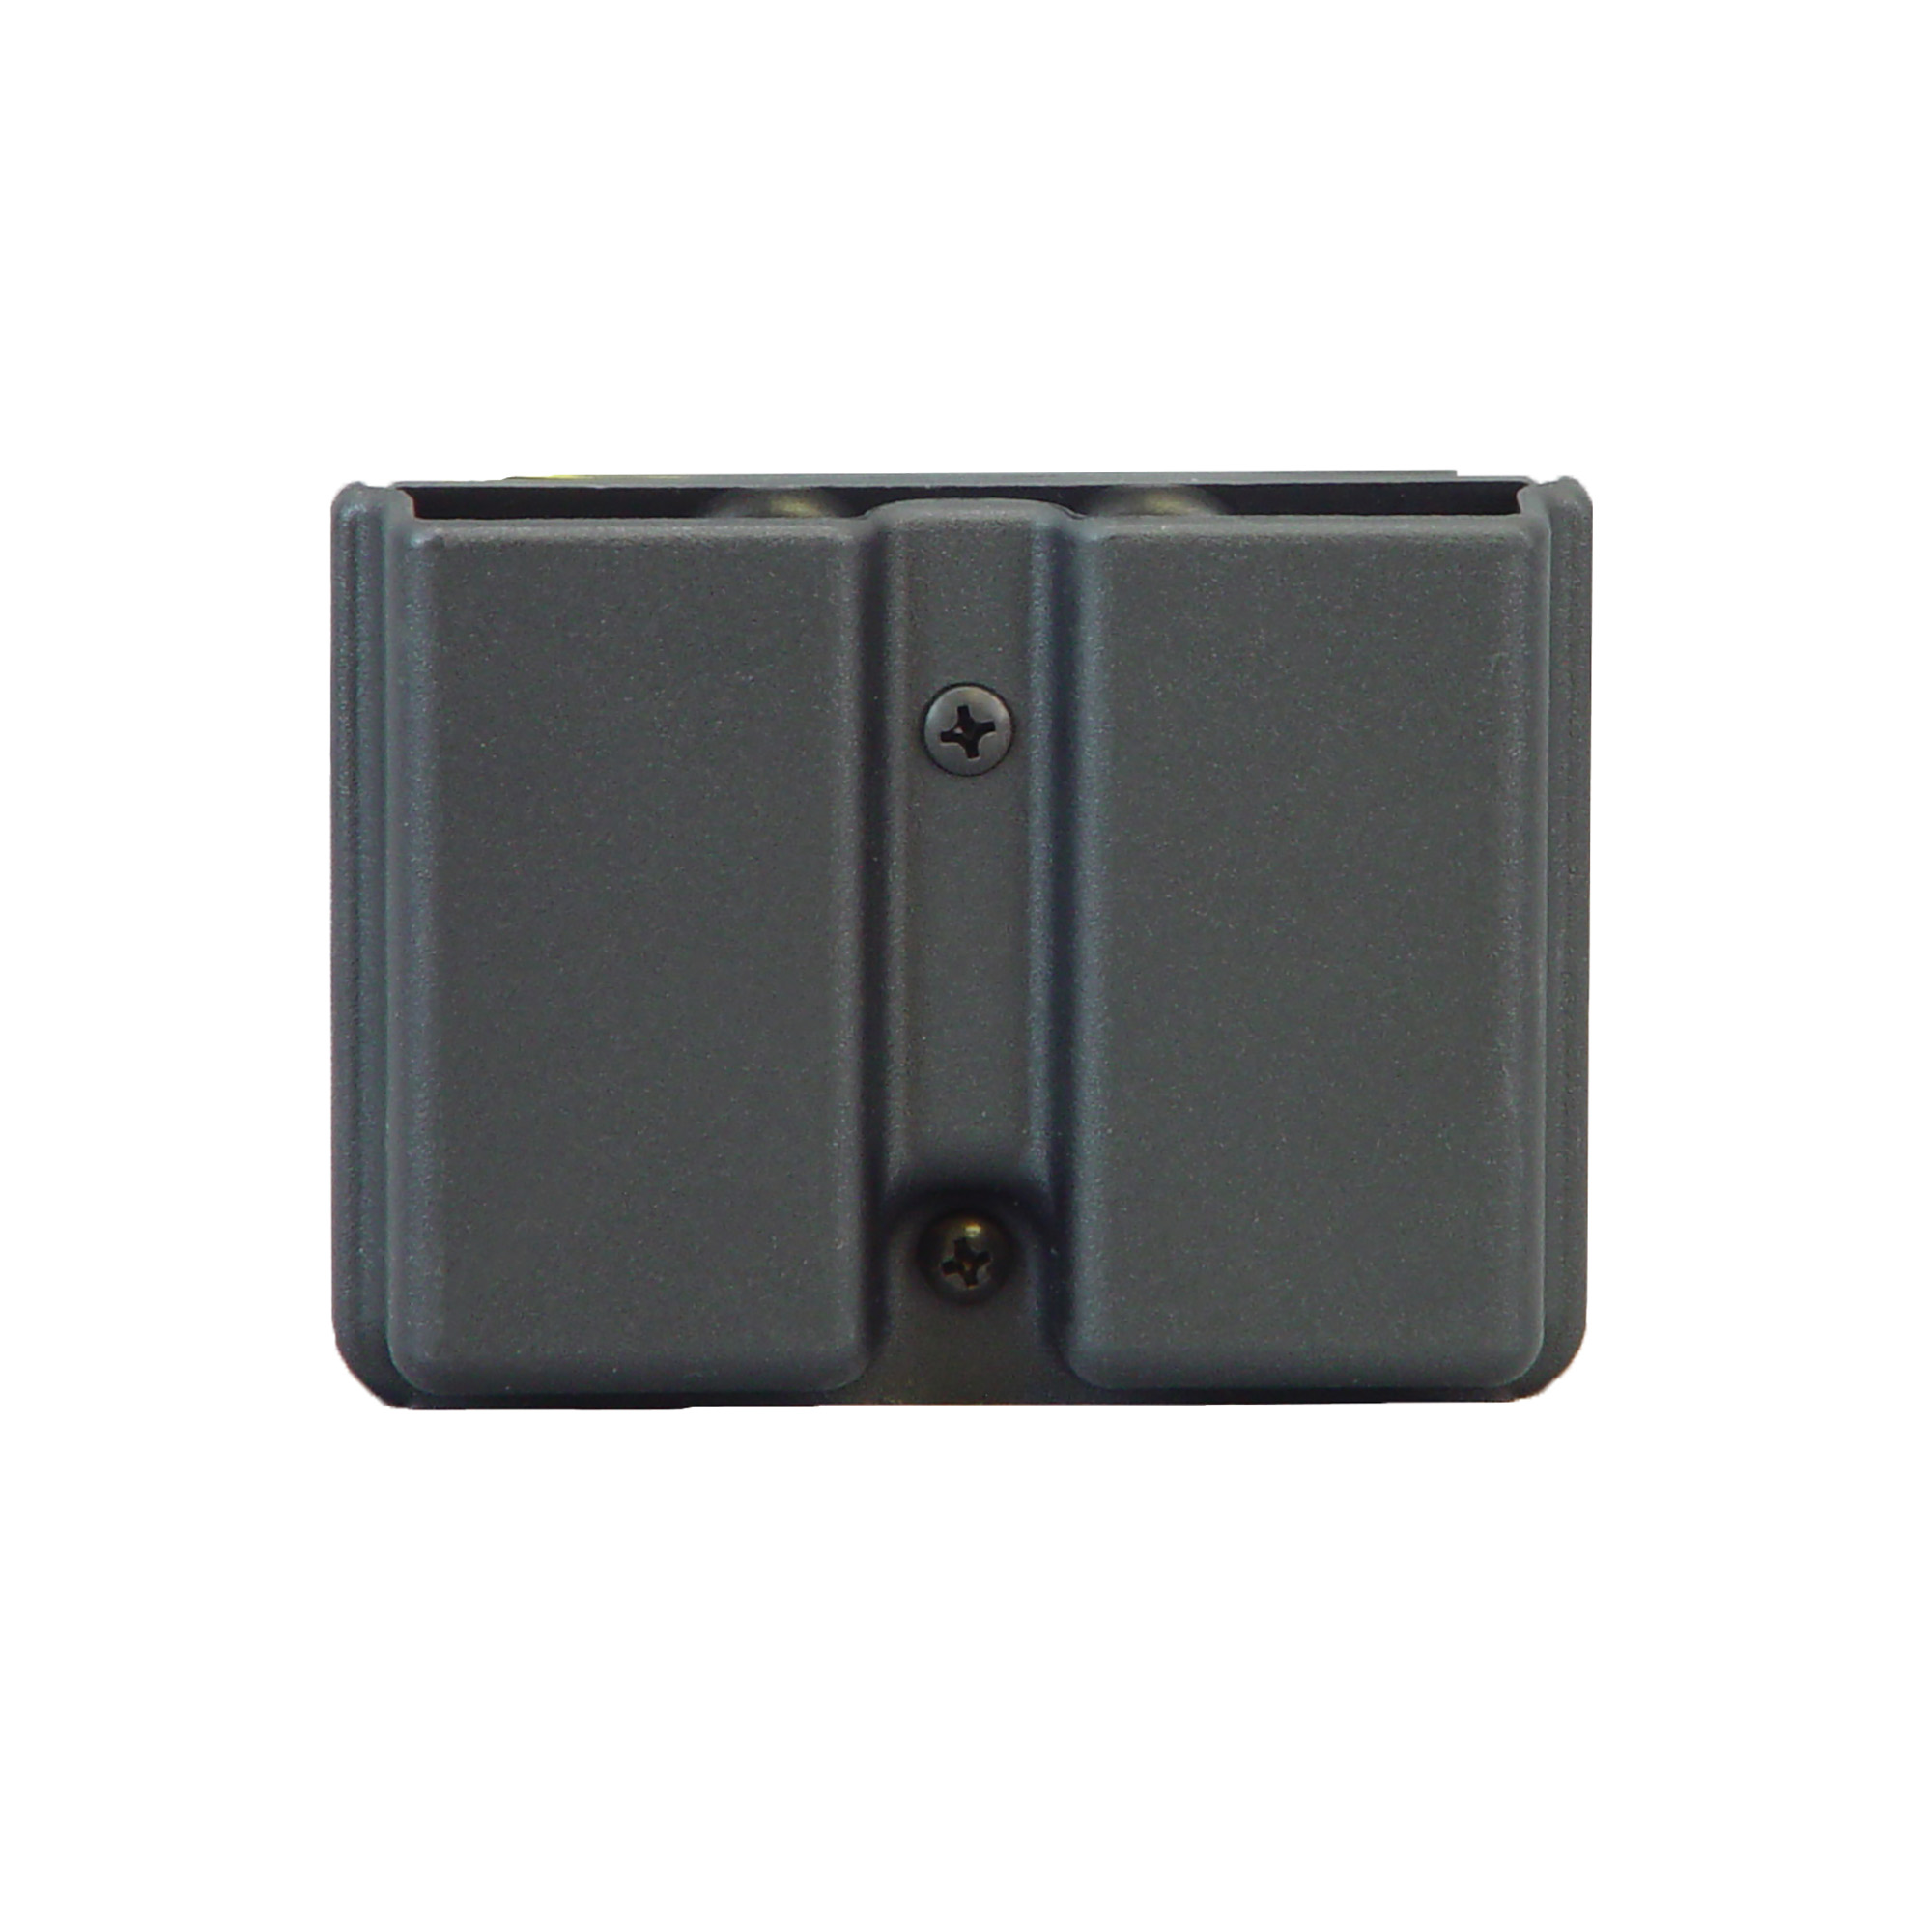 """Give your magazines the same protection as your firearm. Internal tensioning device for security. Fits belt loops up to 1 3/4"""" or can be clipped over waistband."""